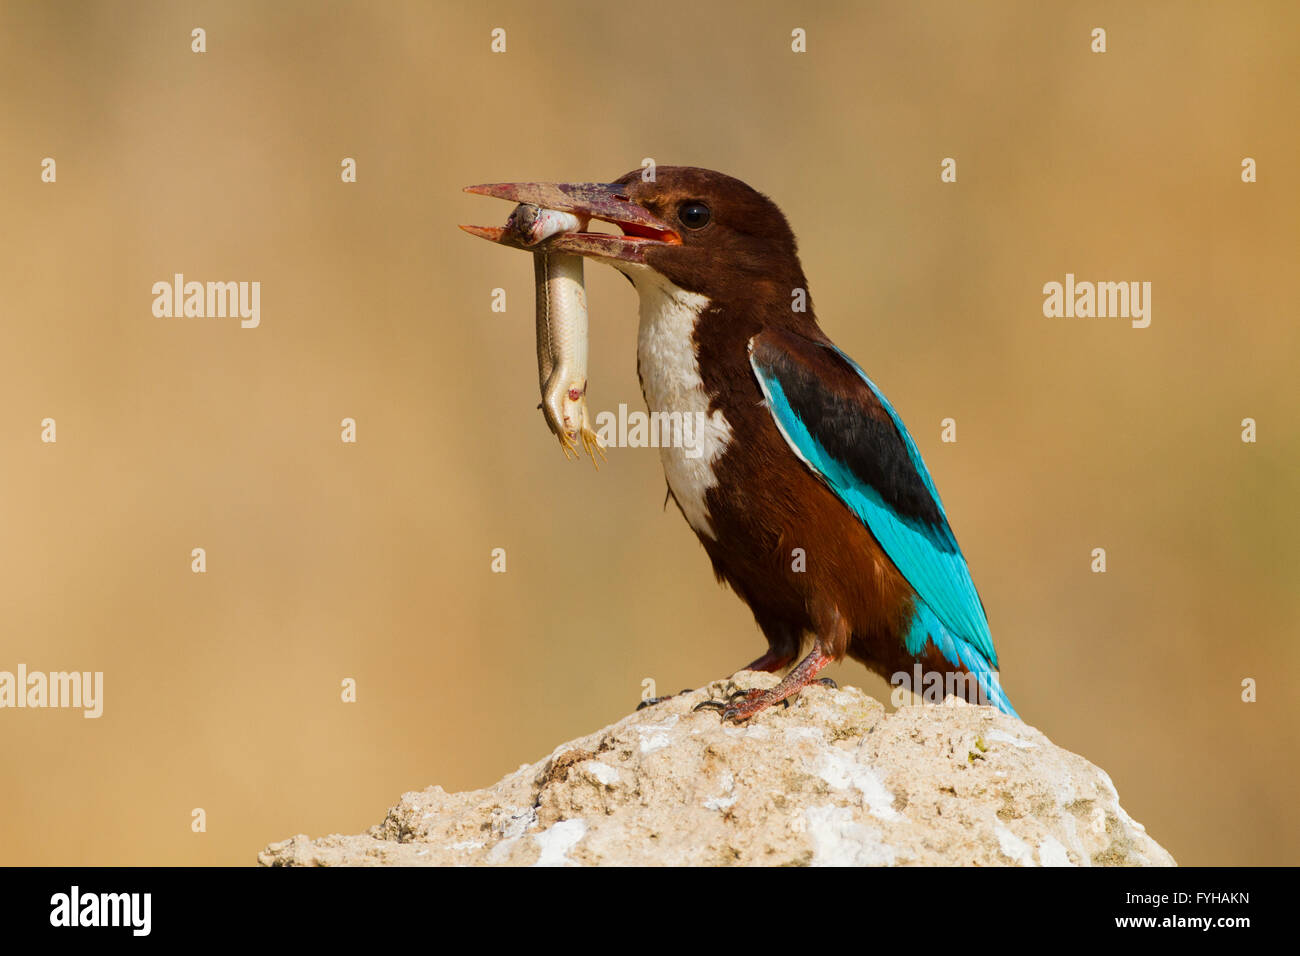 White-throated Kingfisher (Halcyon smyrnensis) with a lizard in its beak, Negev, Israel - Stock Image